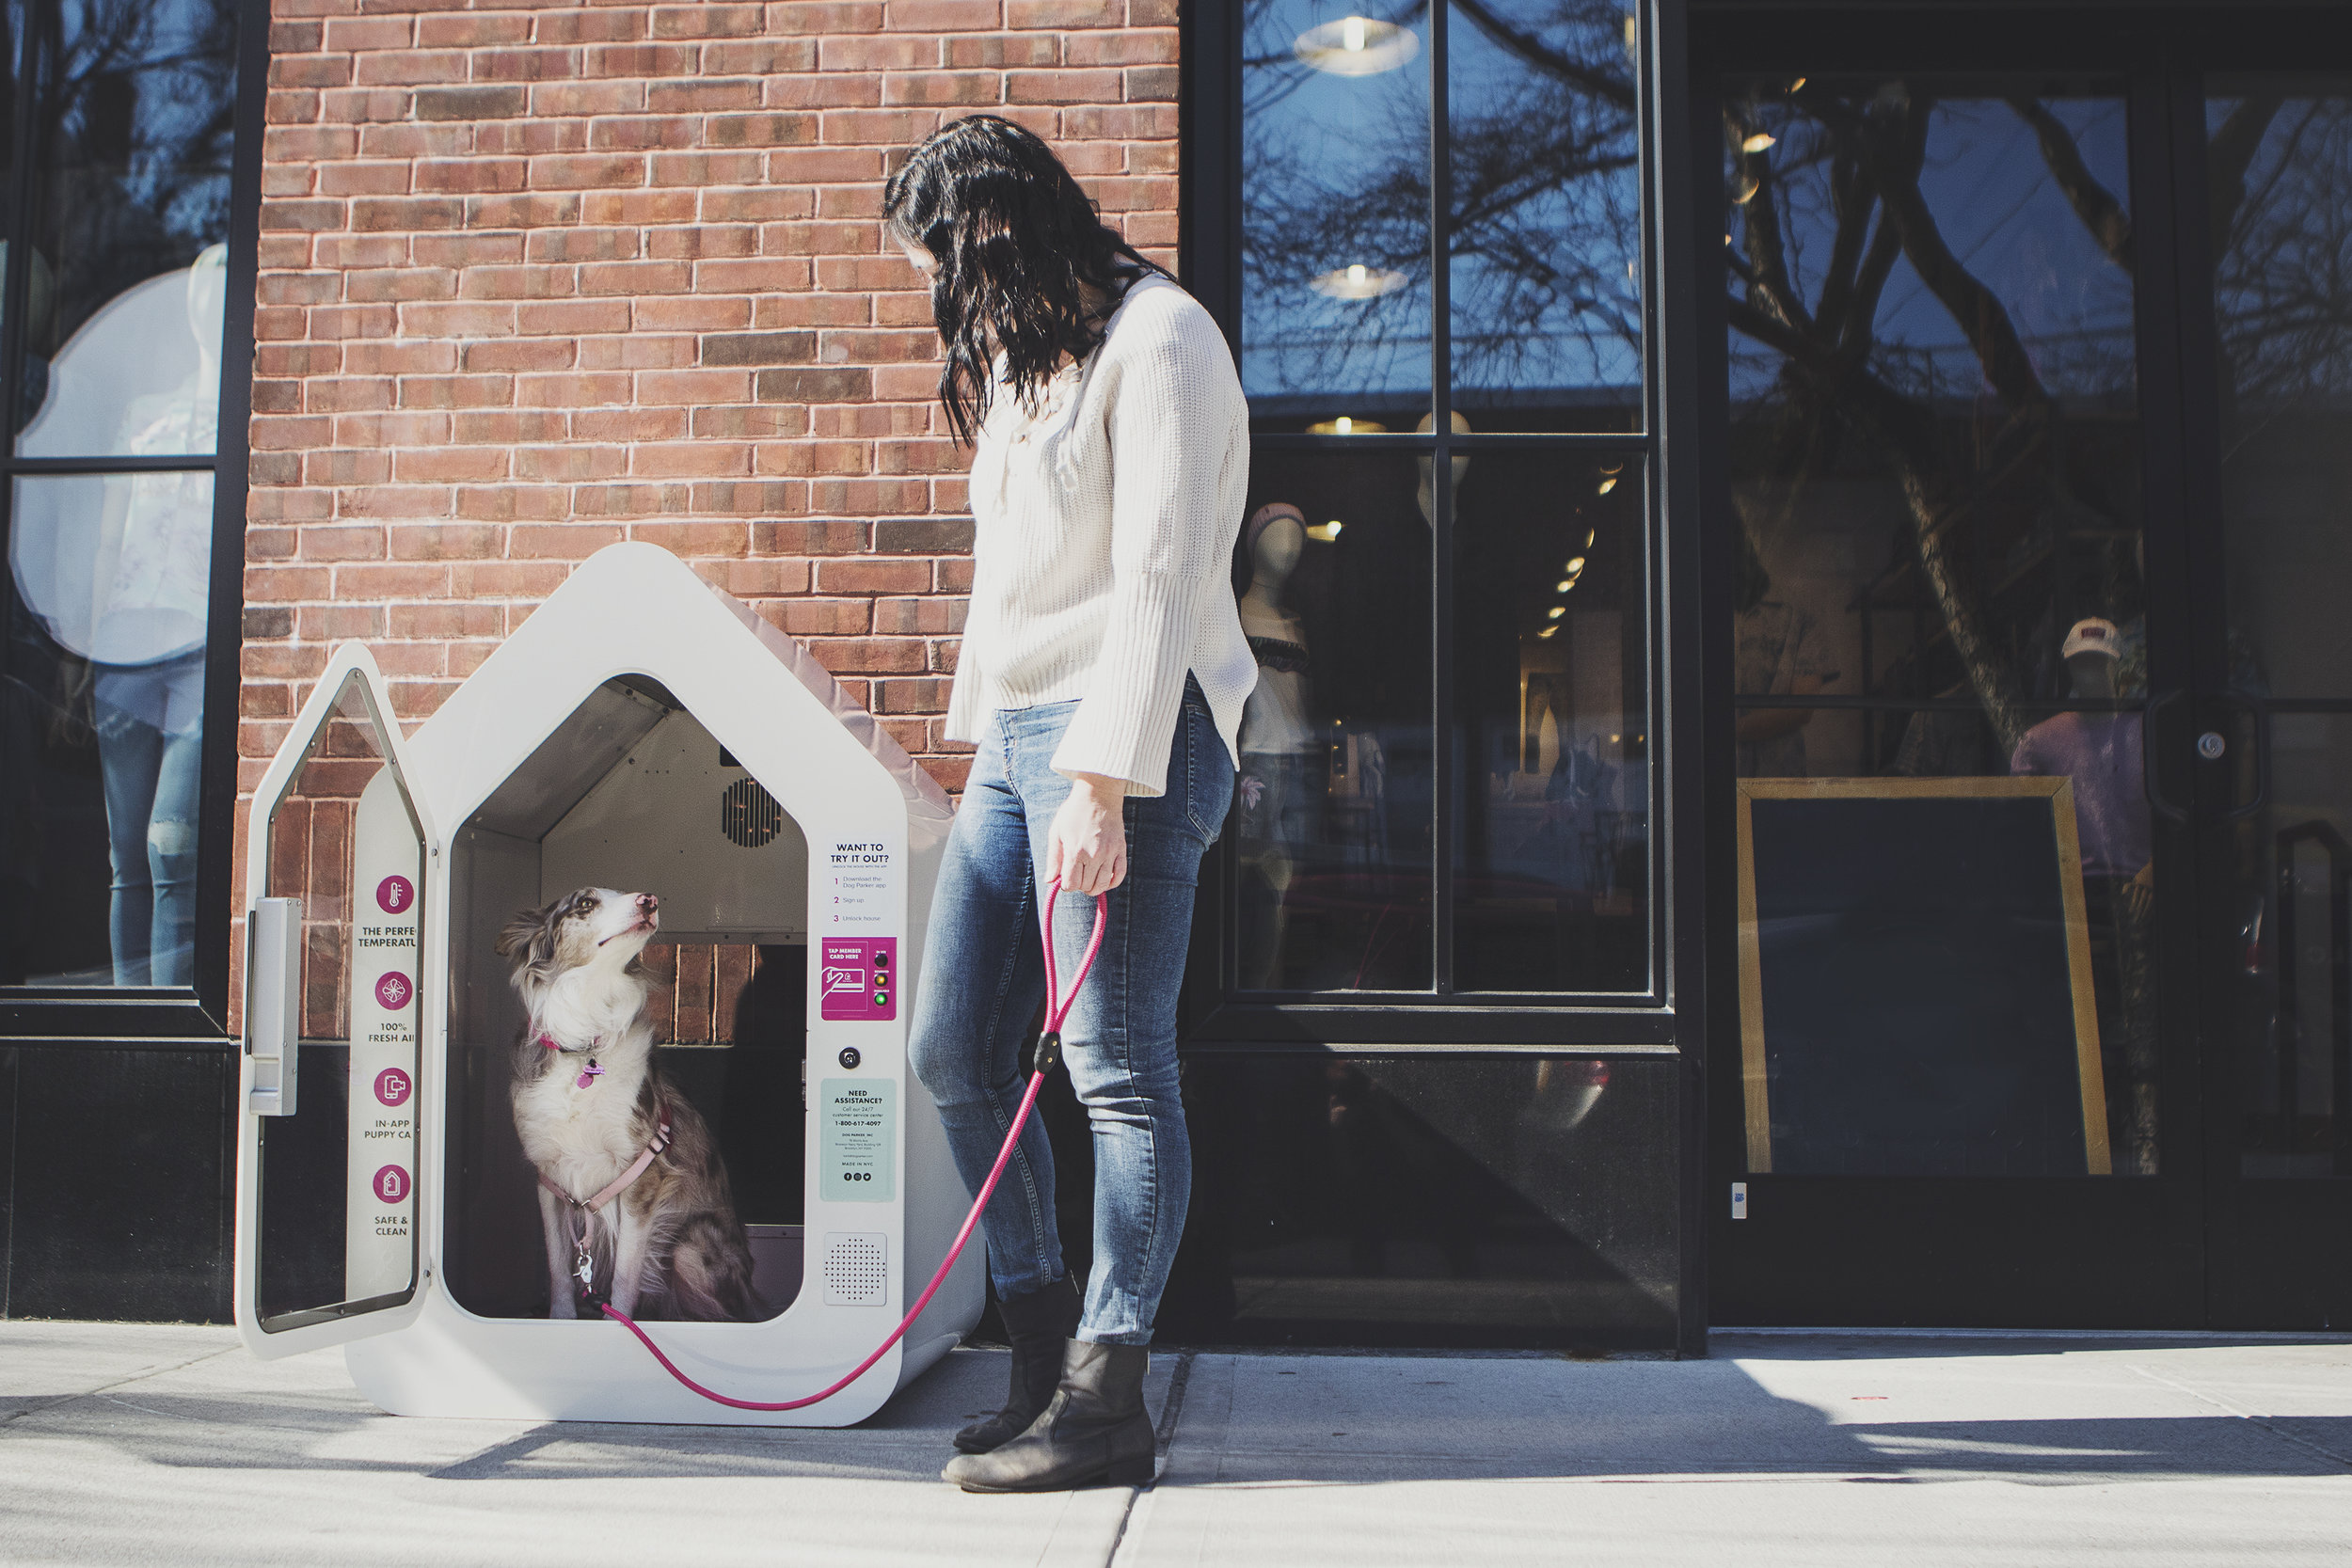 GET A DOGSPOT FOR YOUR BUSINESS -